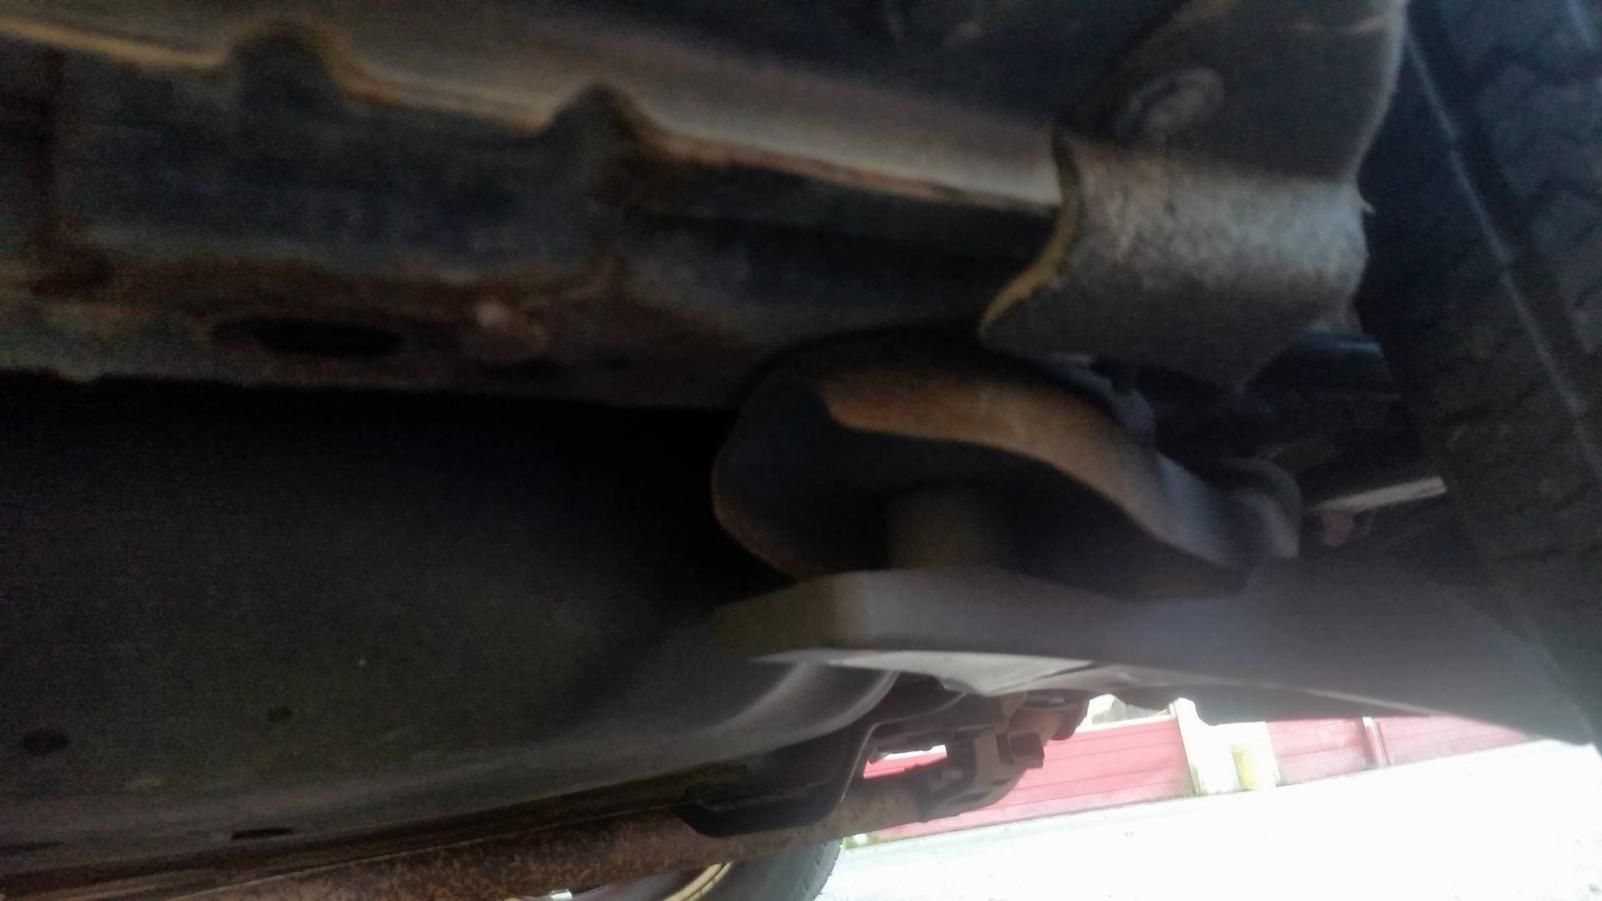 2009 Nissan Murano With A Rusted Subframe Page 2